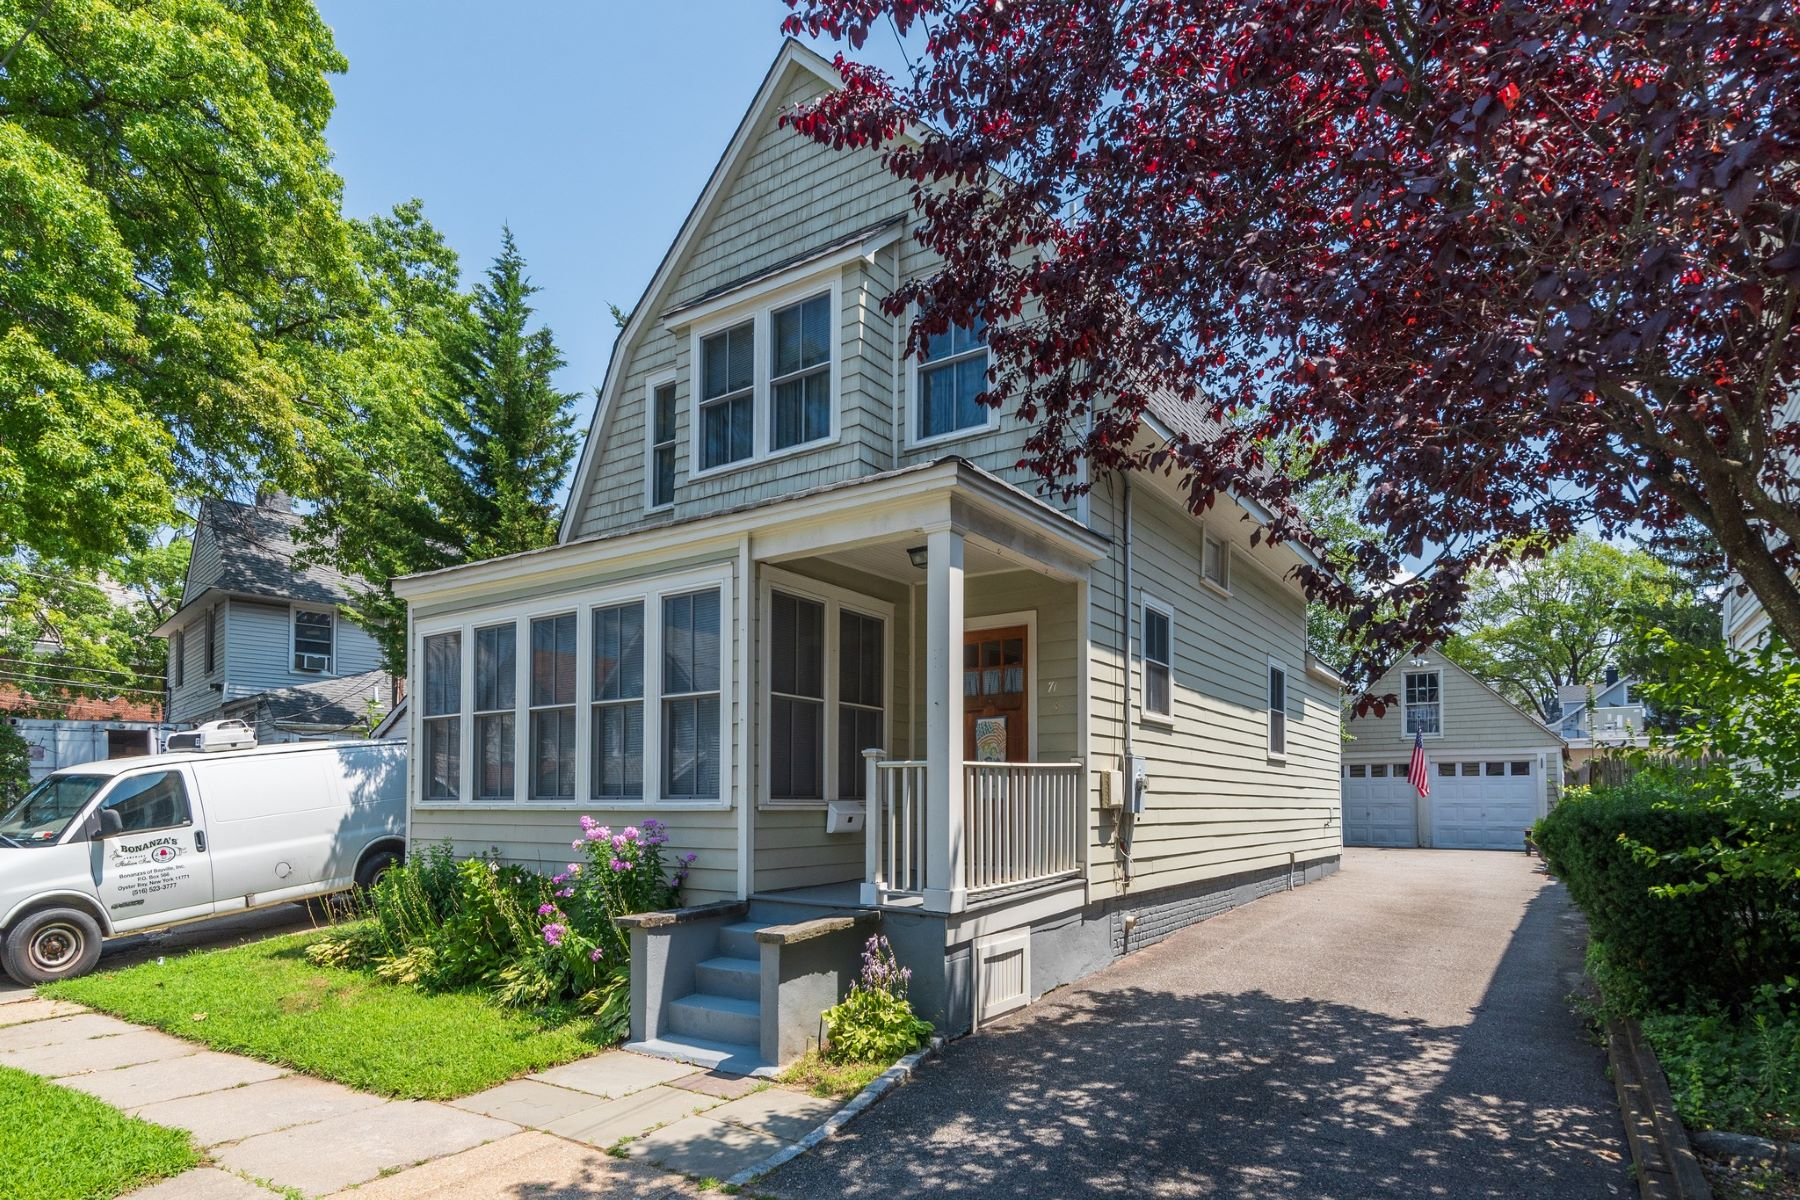 Single Family Homes for Active at Oyster Bay 71 Maxwell Ave Oyster Bay, New York 11771 United States